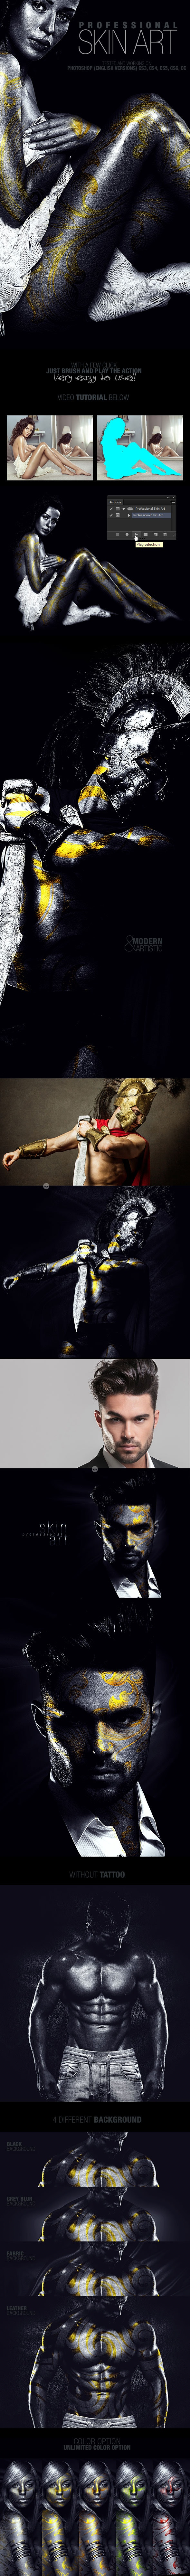 Professional Skin Art Photoshop Action - Photo Effects Actions